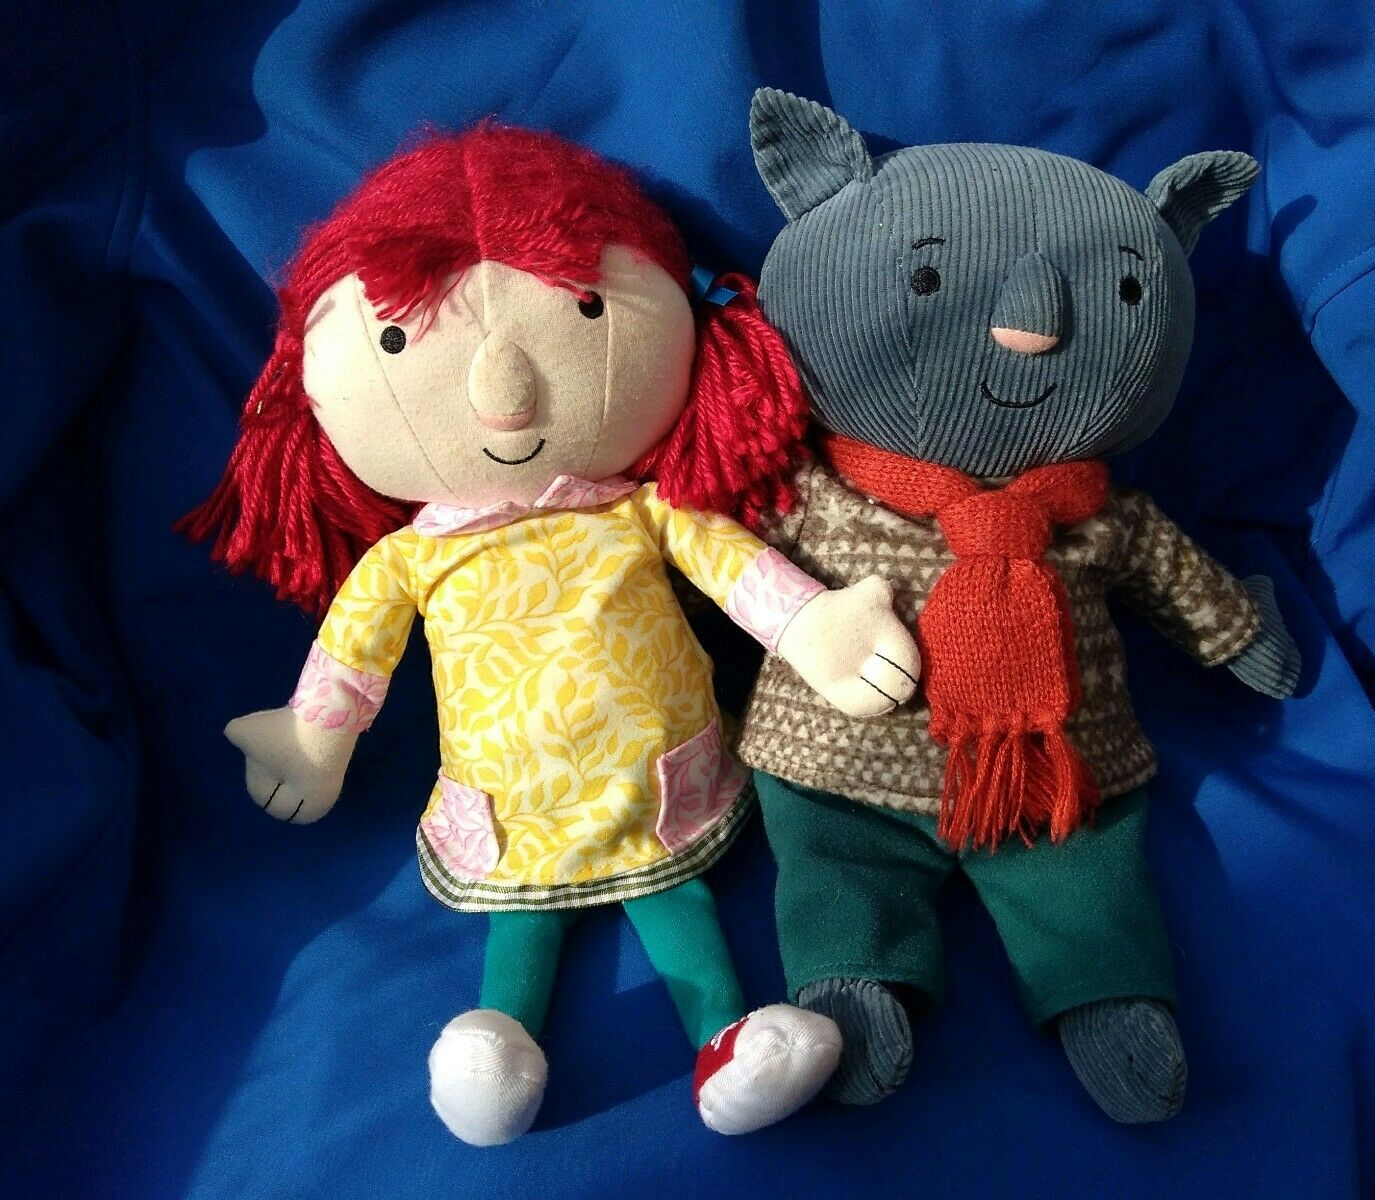 CEBEEBIES THE ADVENTURES OF ABNEY AND TEAL SOFT PLUSH FIGURES